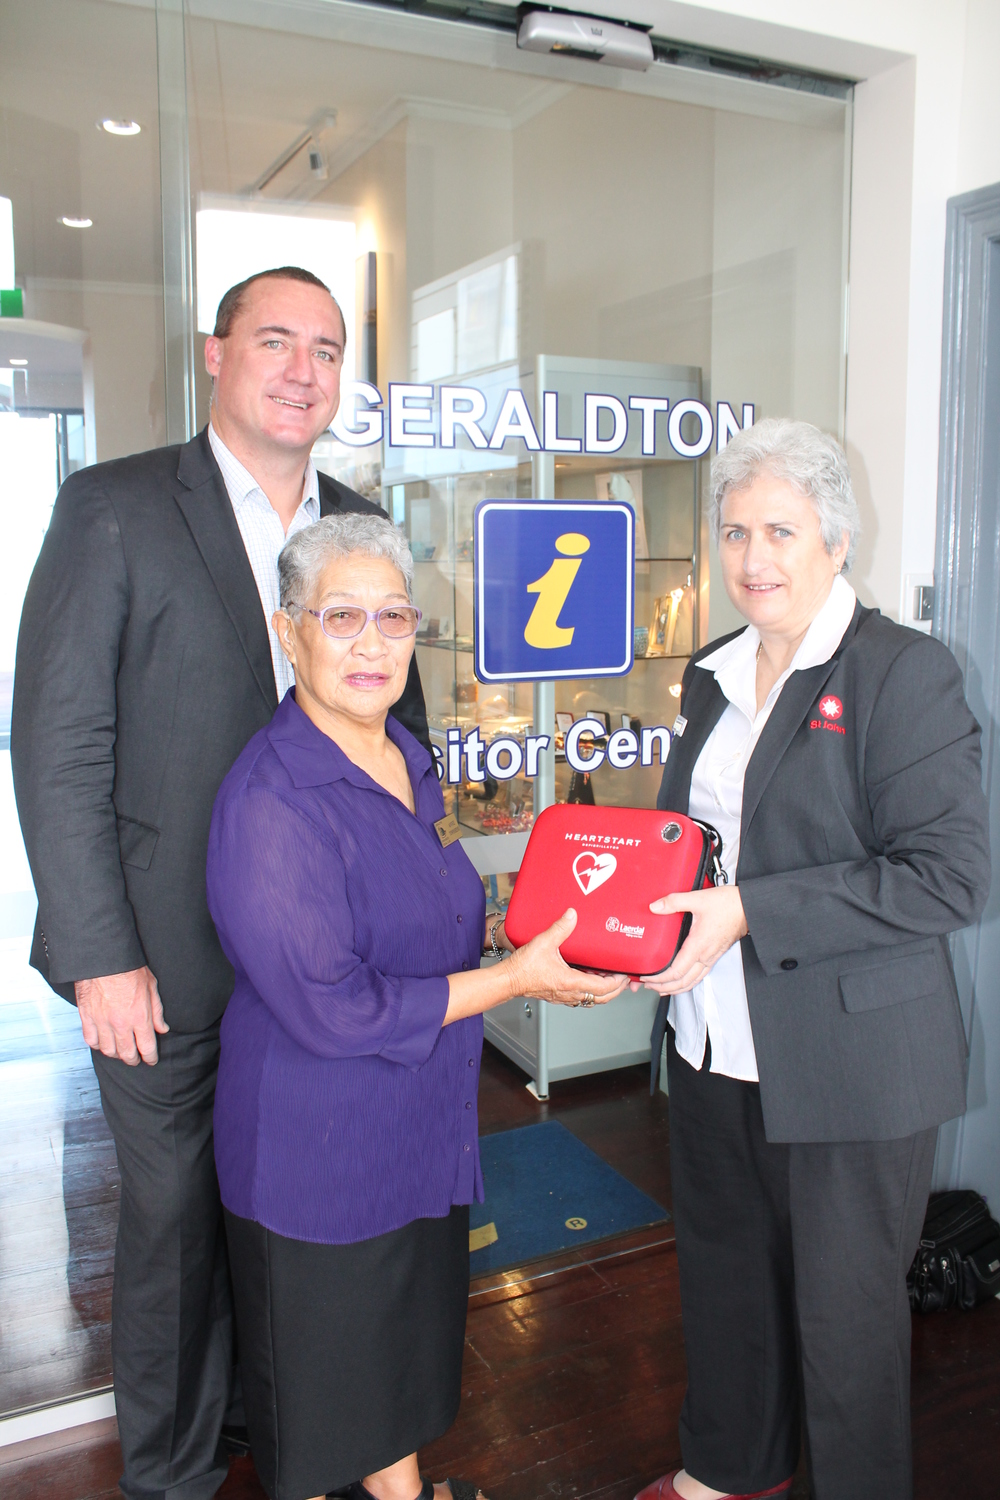 City of Greater Geraldton Mayor, Shane Van Styn, and Geraldton Pensioner Social Club President, Annie Smith-Townsend, receiving the Automated External Defibrillator from St John Ambulance Regional Manager Mid West, Lynne Hunt.